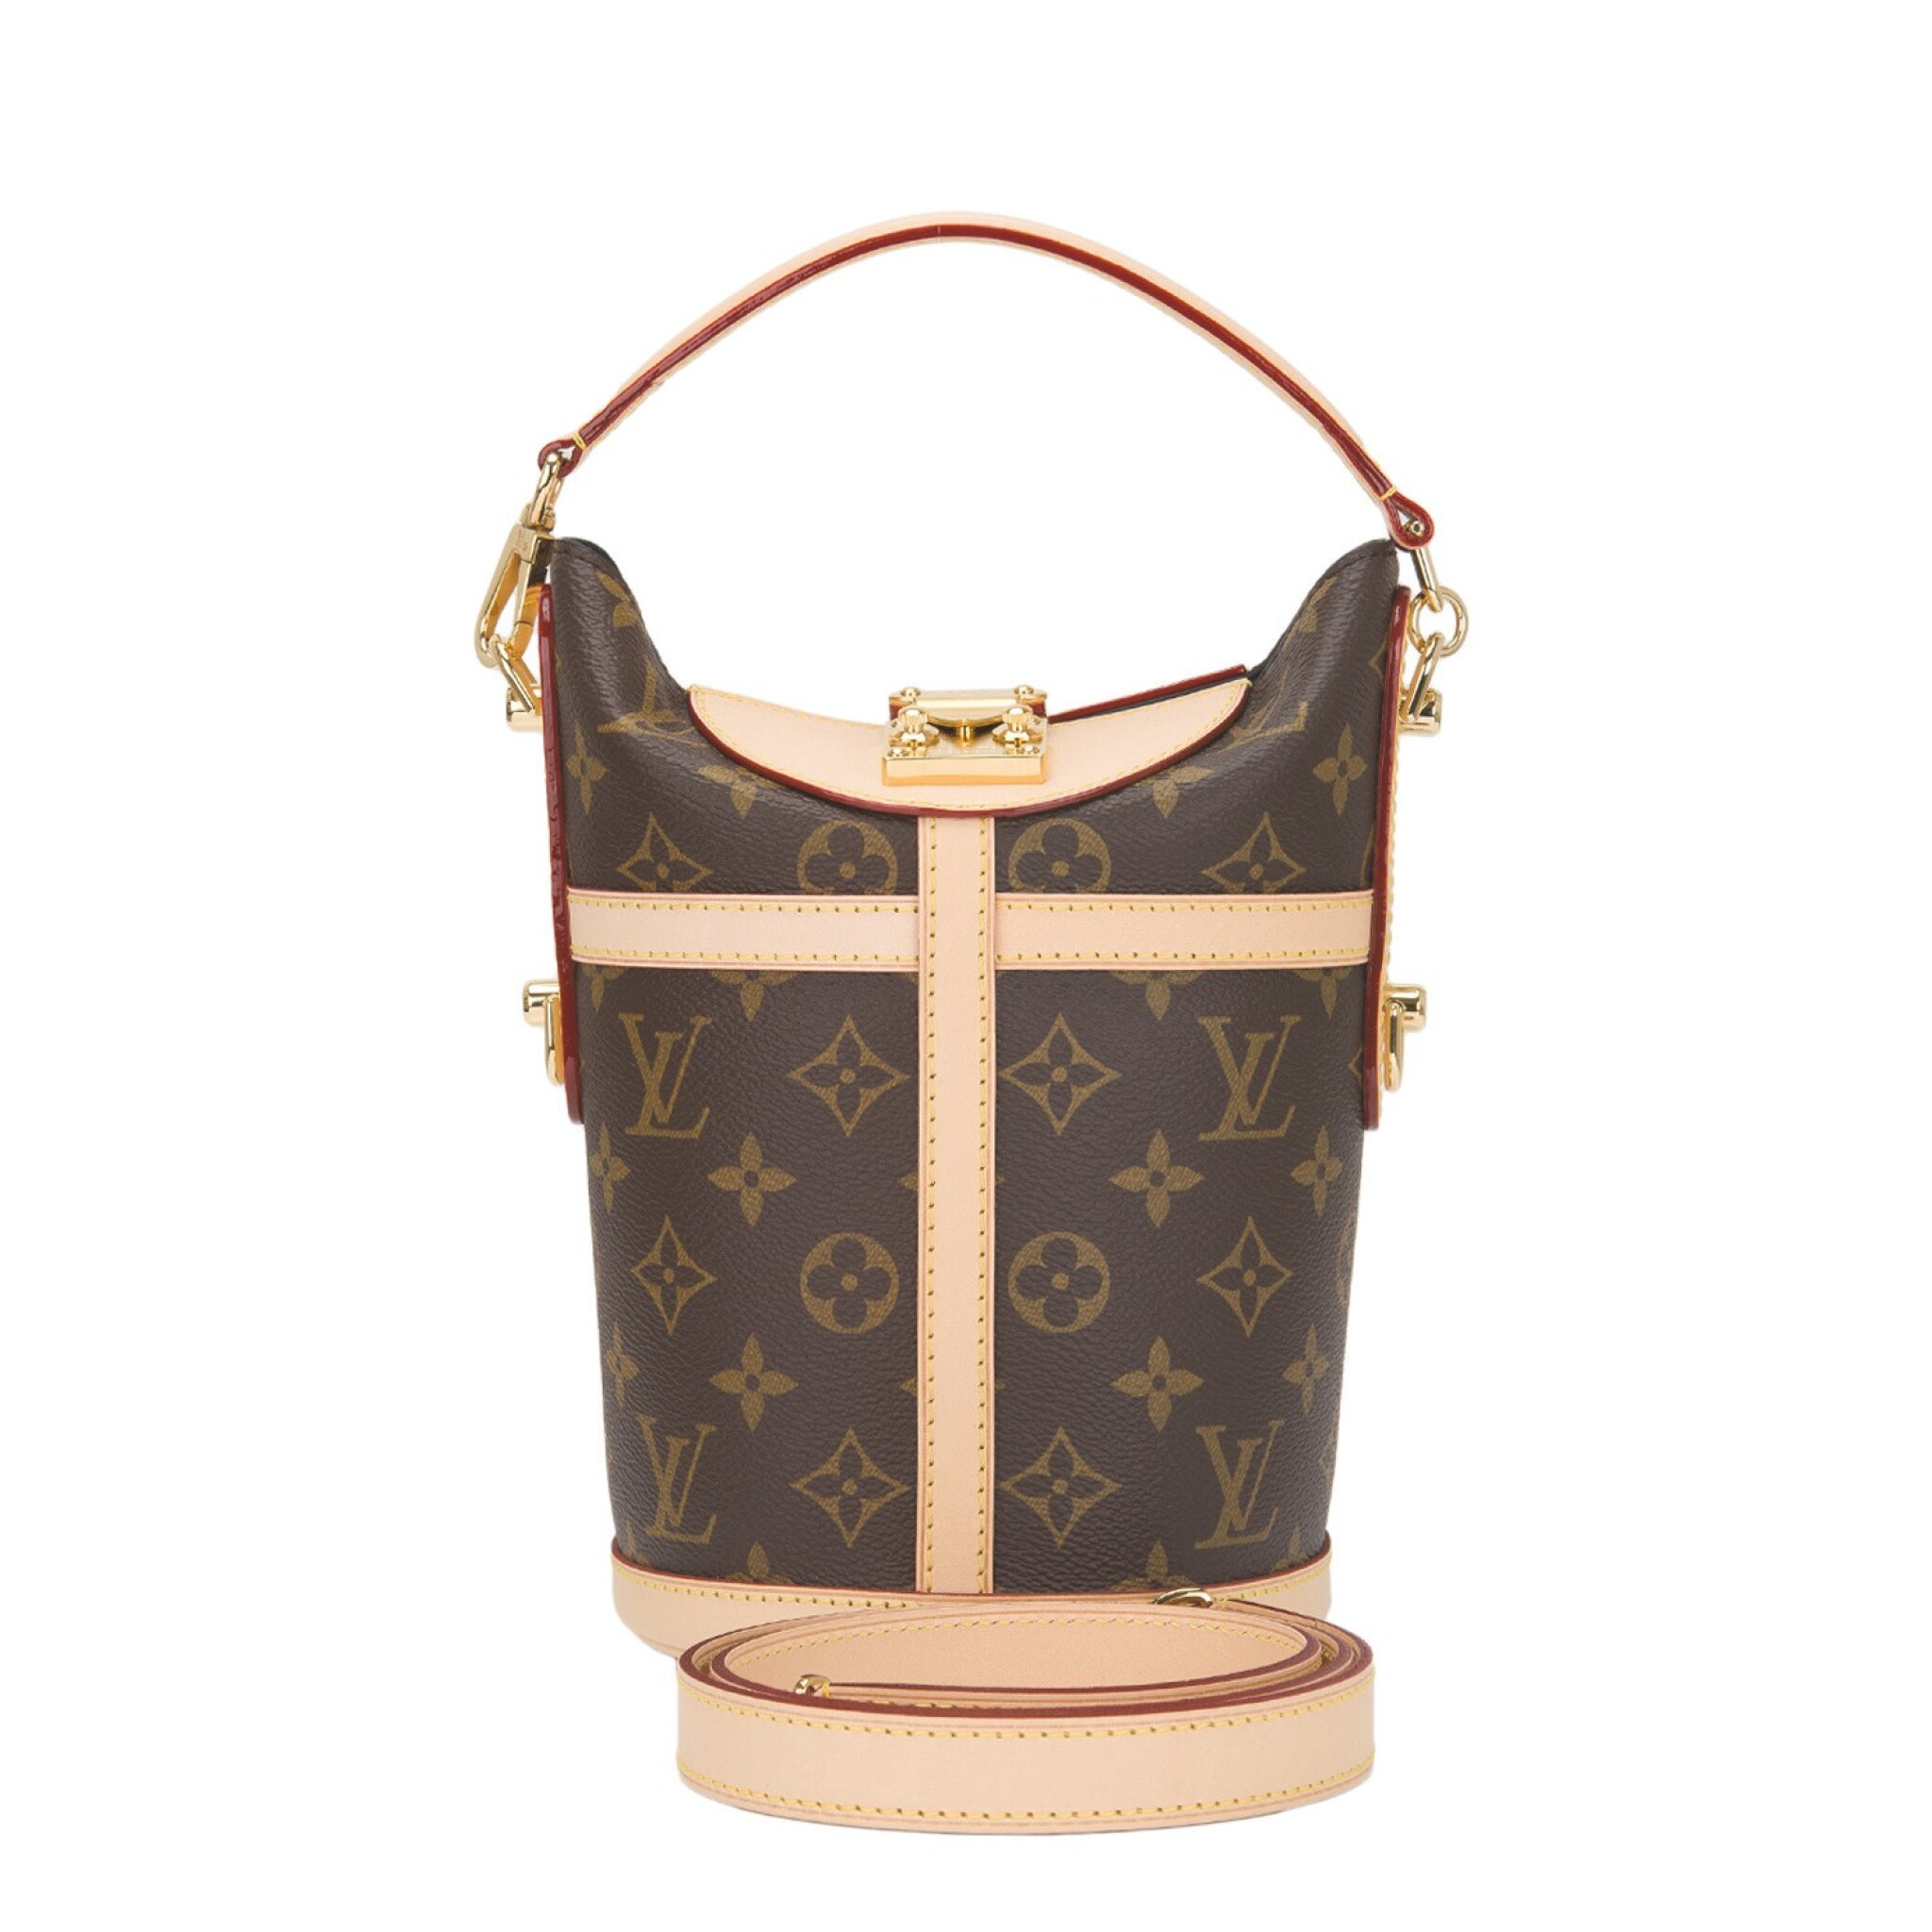 View full screen - View 1 of Lot 55. Louis Vuitton Monogram Duffle Bag PM of Coated Canvas and Gold Tone Hardware.